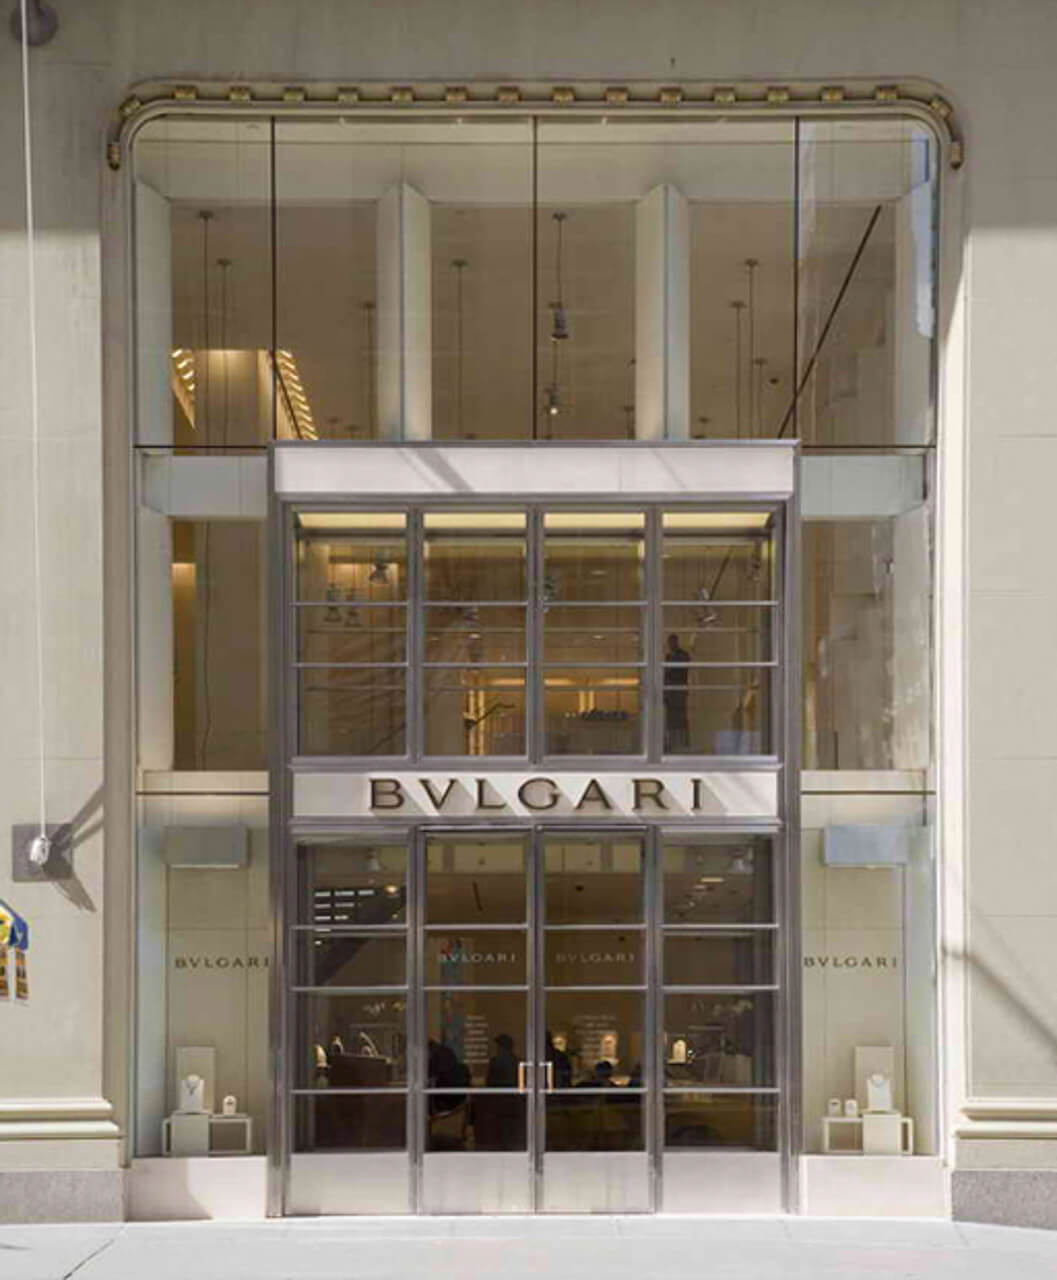 Bulgari on view